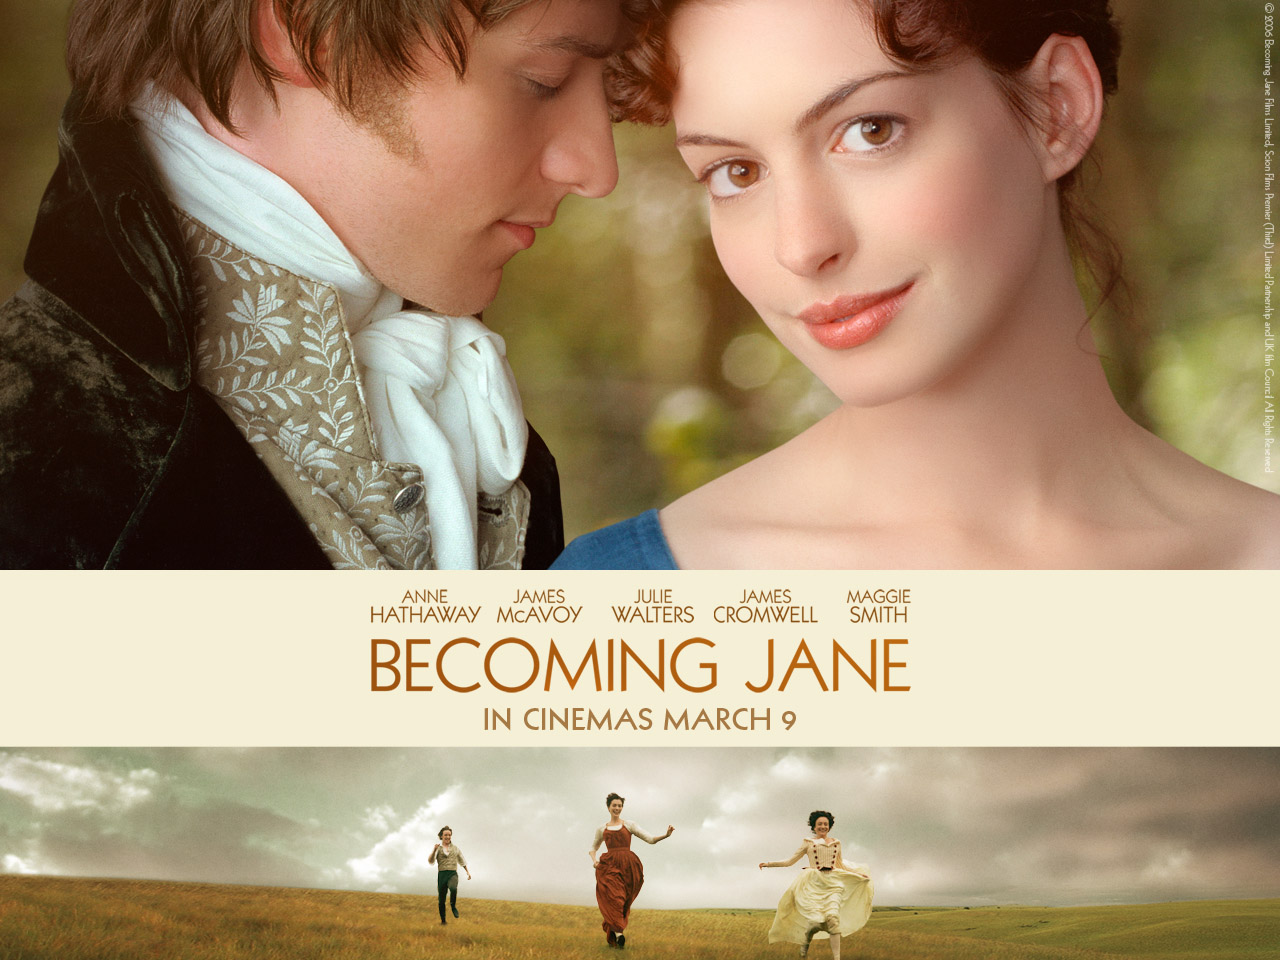 http://1.bp.blogspot.com/_Znta9KdaX2c/TA-WXZGif3I/AAAAAAAADbo/tXFWLd280uo/s1600/Becoming-Jane-james-mcavoy-240918_1280_960.jpg